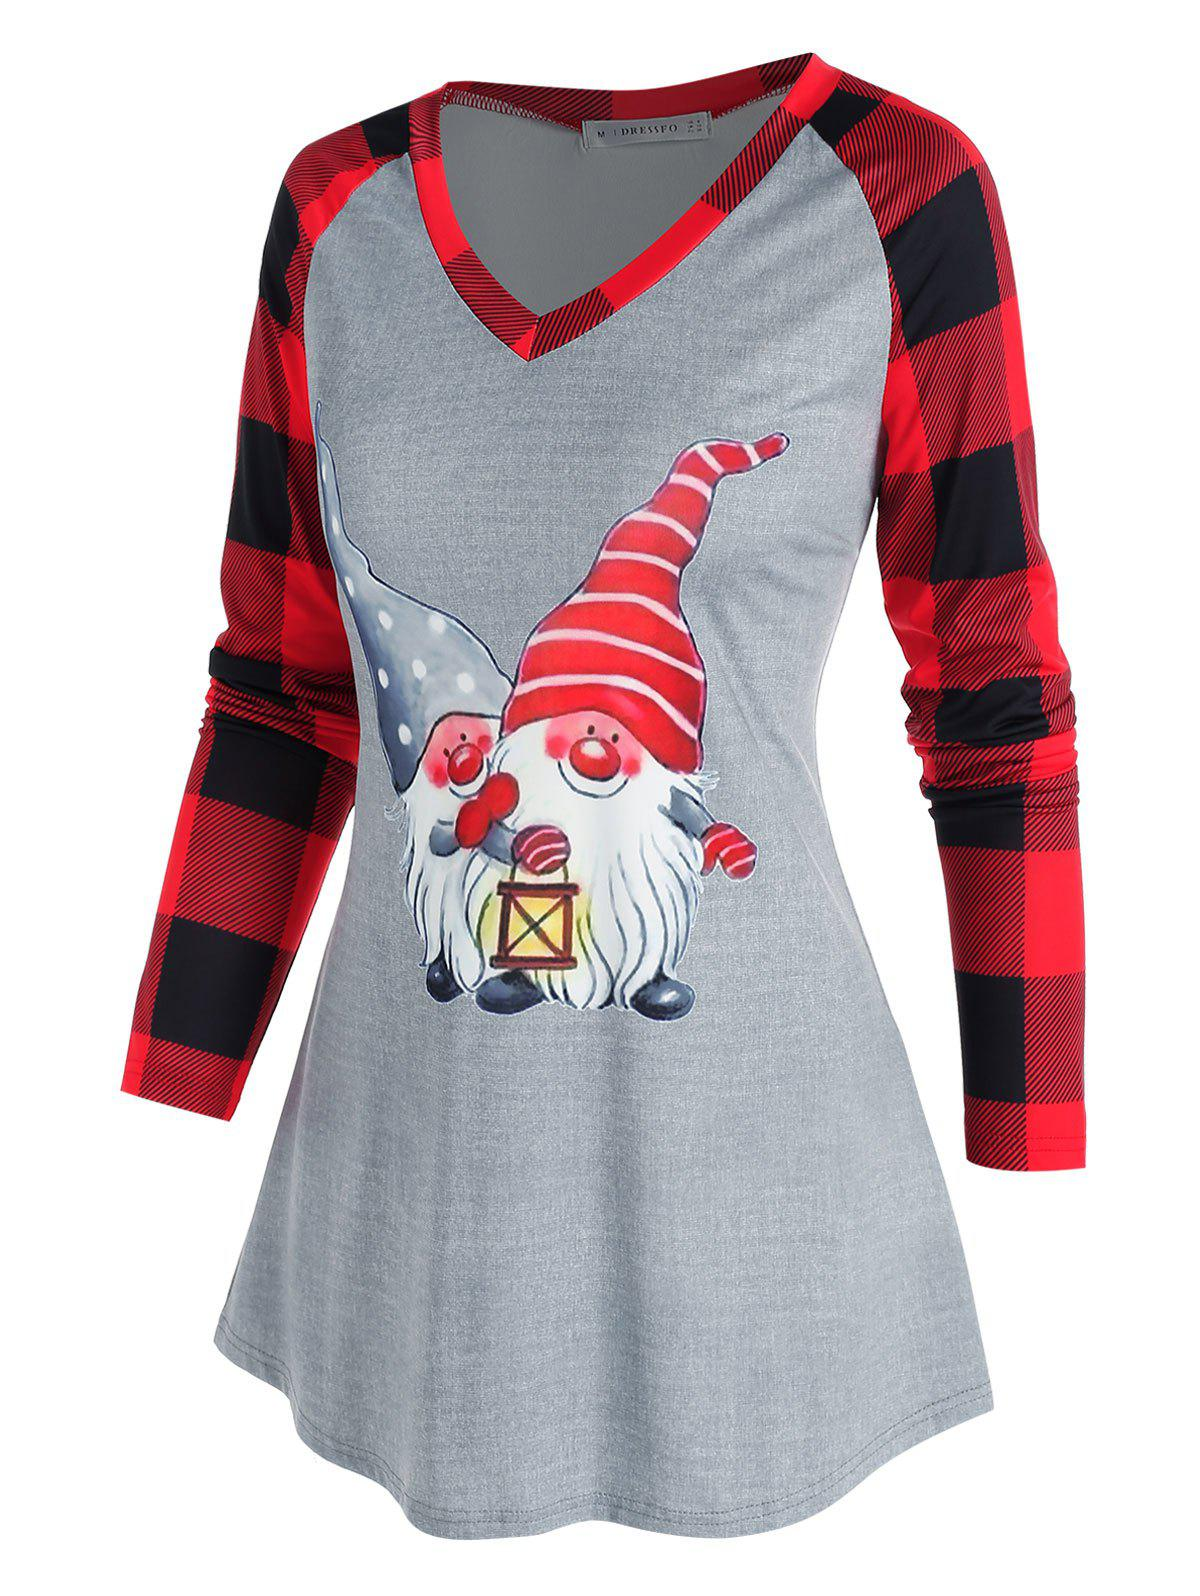 Christmas Plaid Santa Claus Print Raglan Sleeve T Shirt - GRAY 2XL